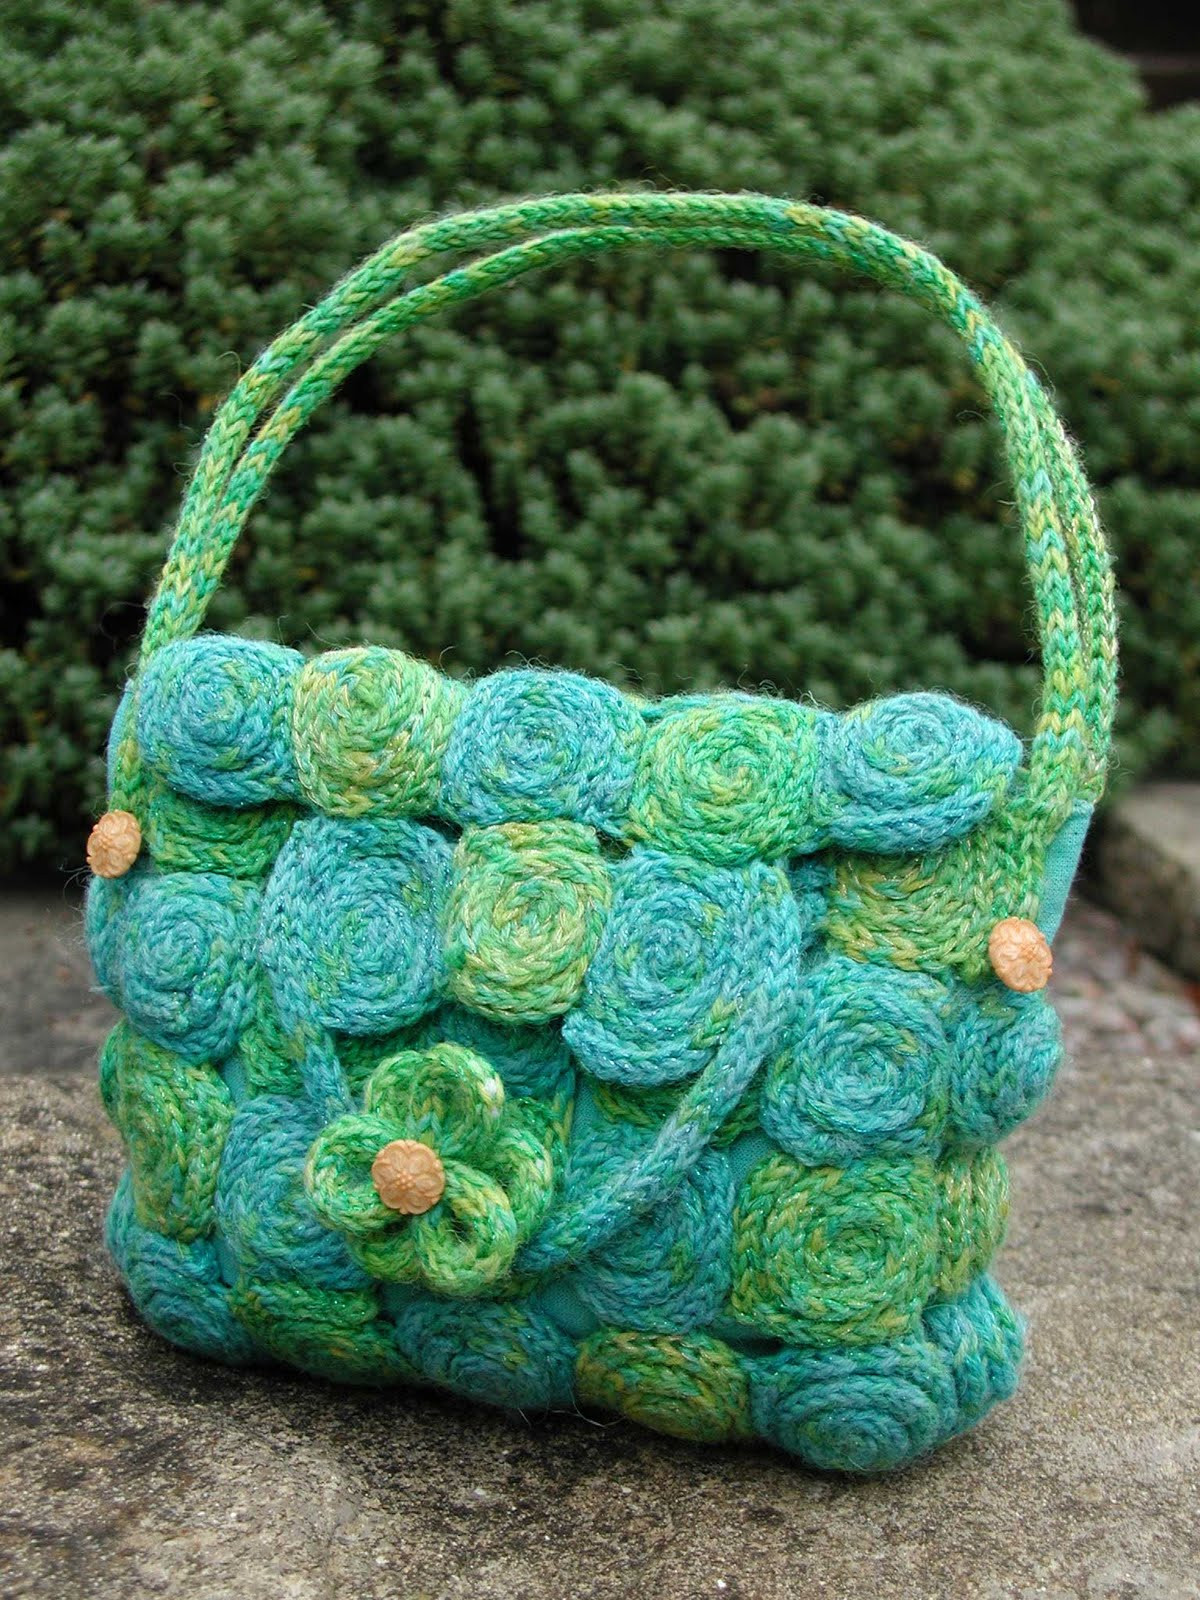 Elegant Hue & Dye New Patterns Available to Knitting Ideas Of Superb 43 Images Knitting Ideas